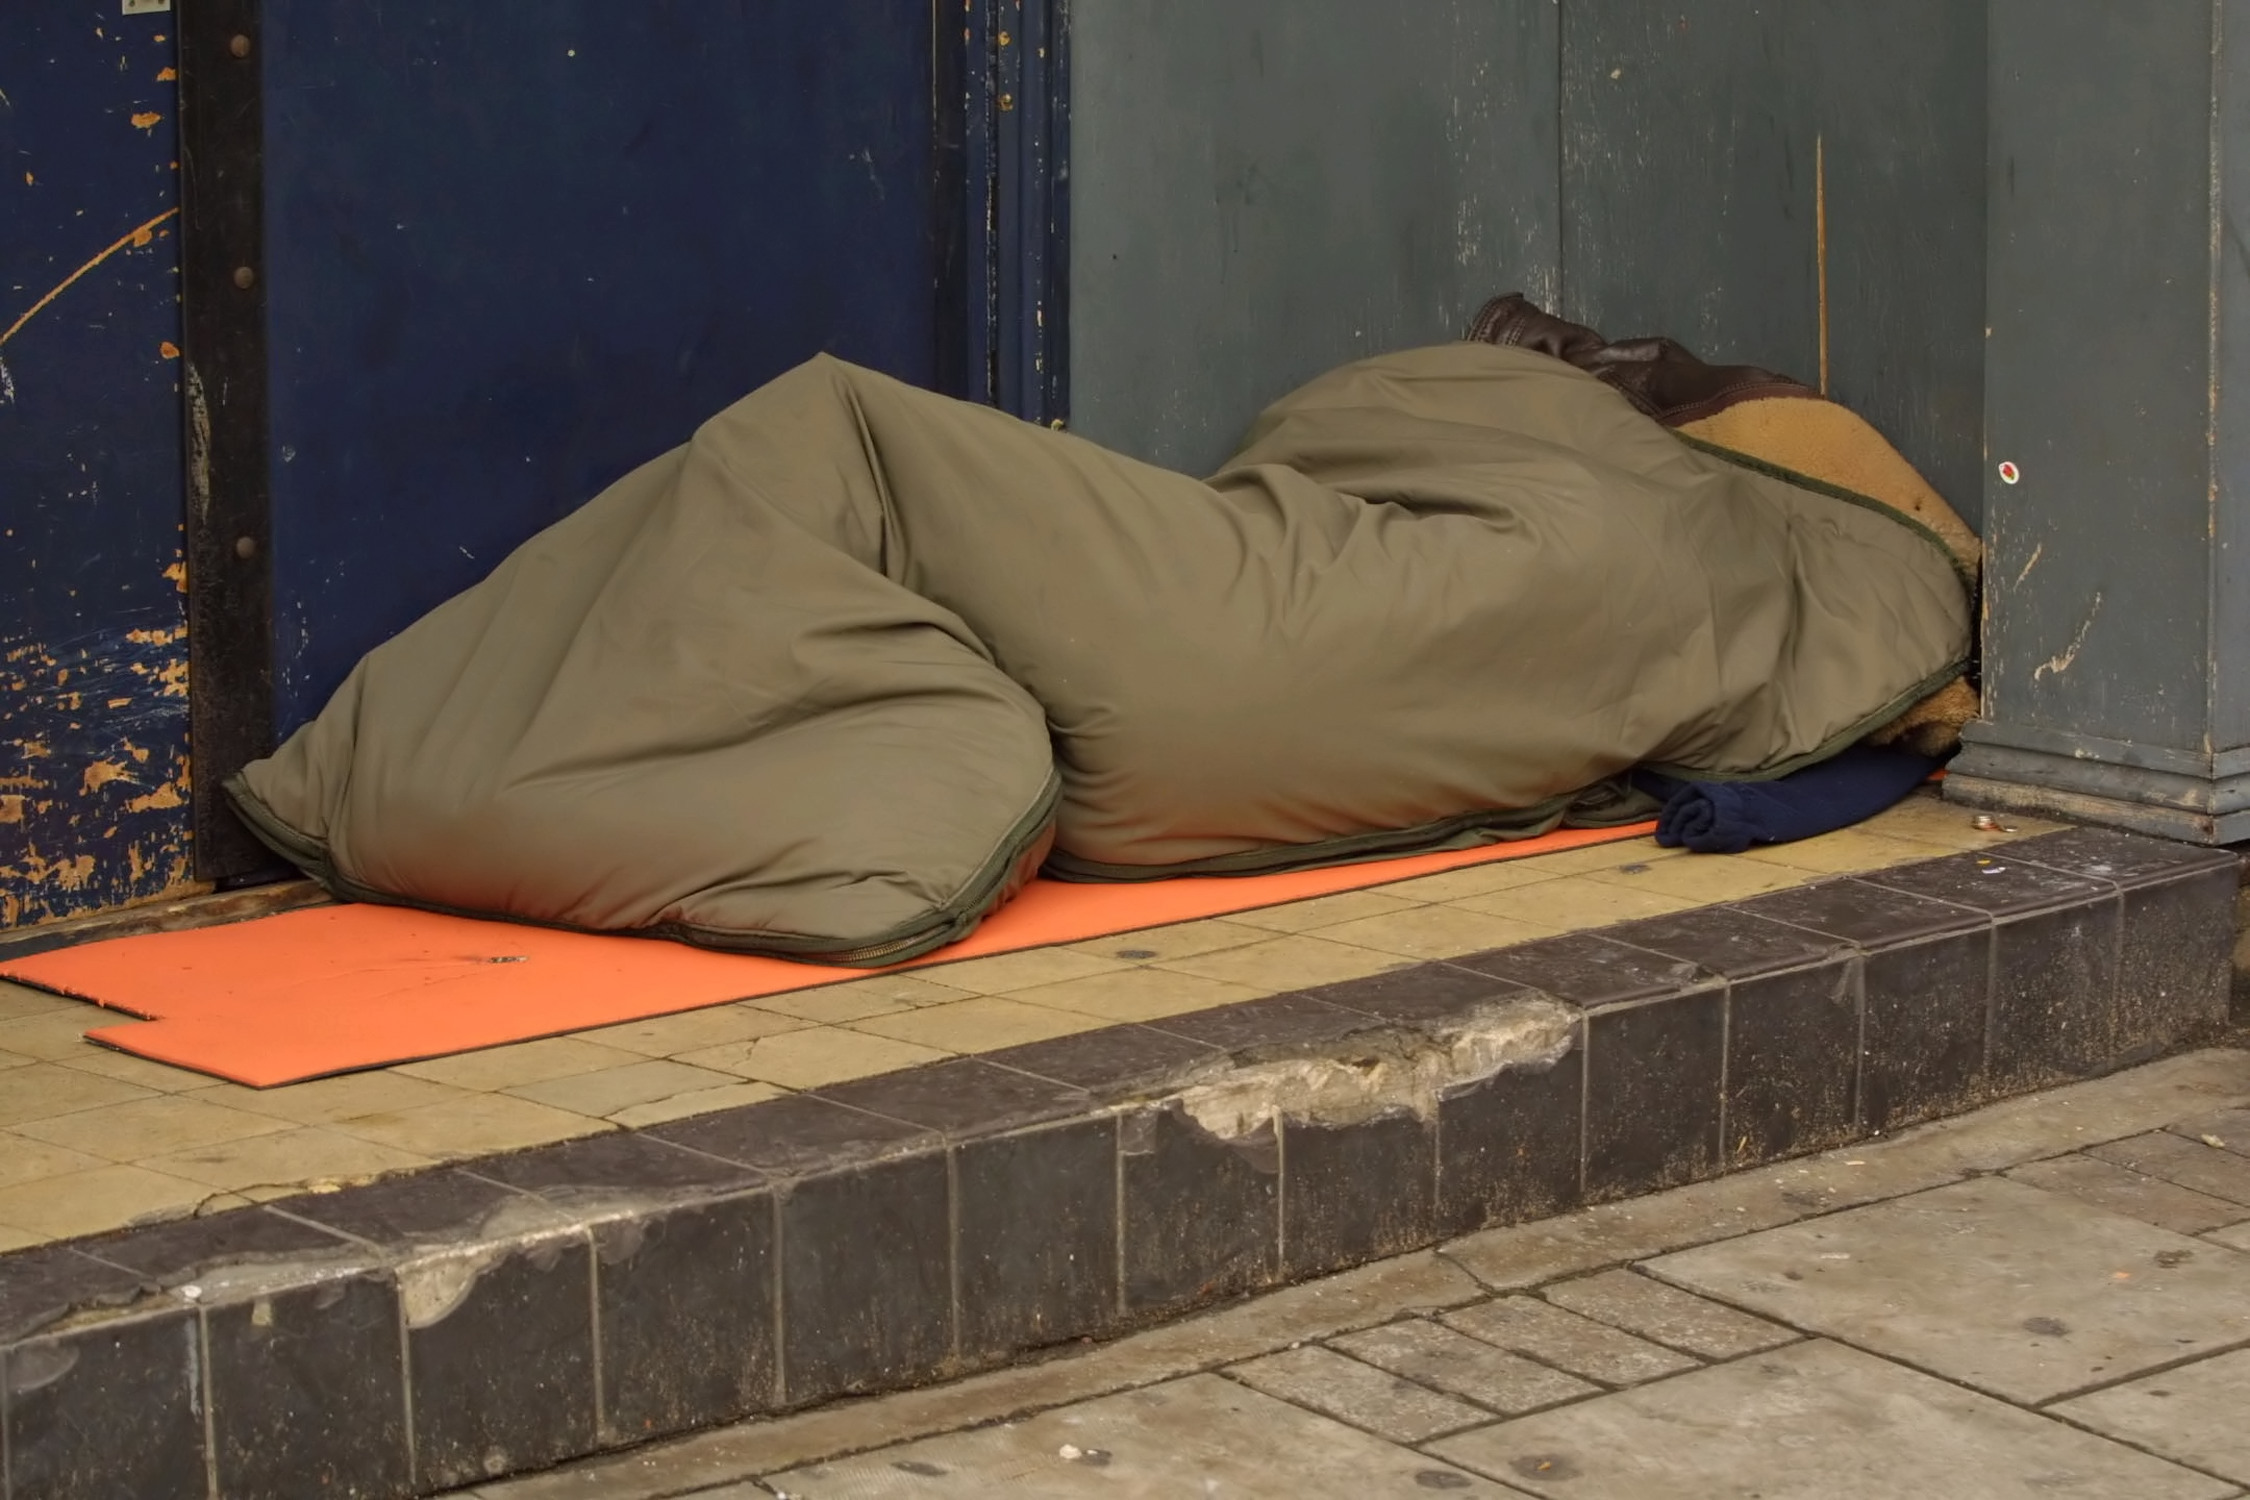 Concerns over provisions for Deeside's rough sleepers